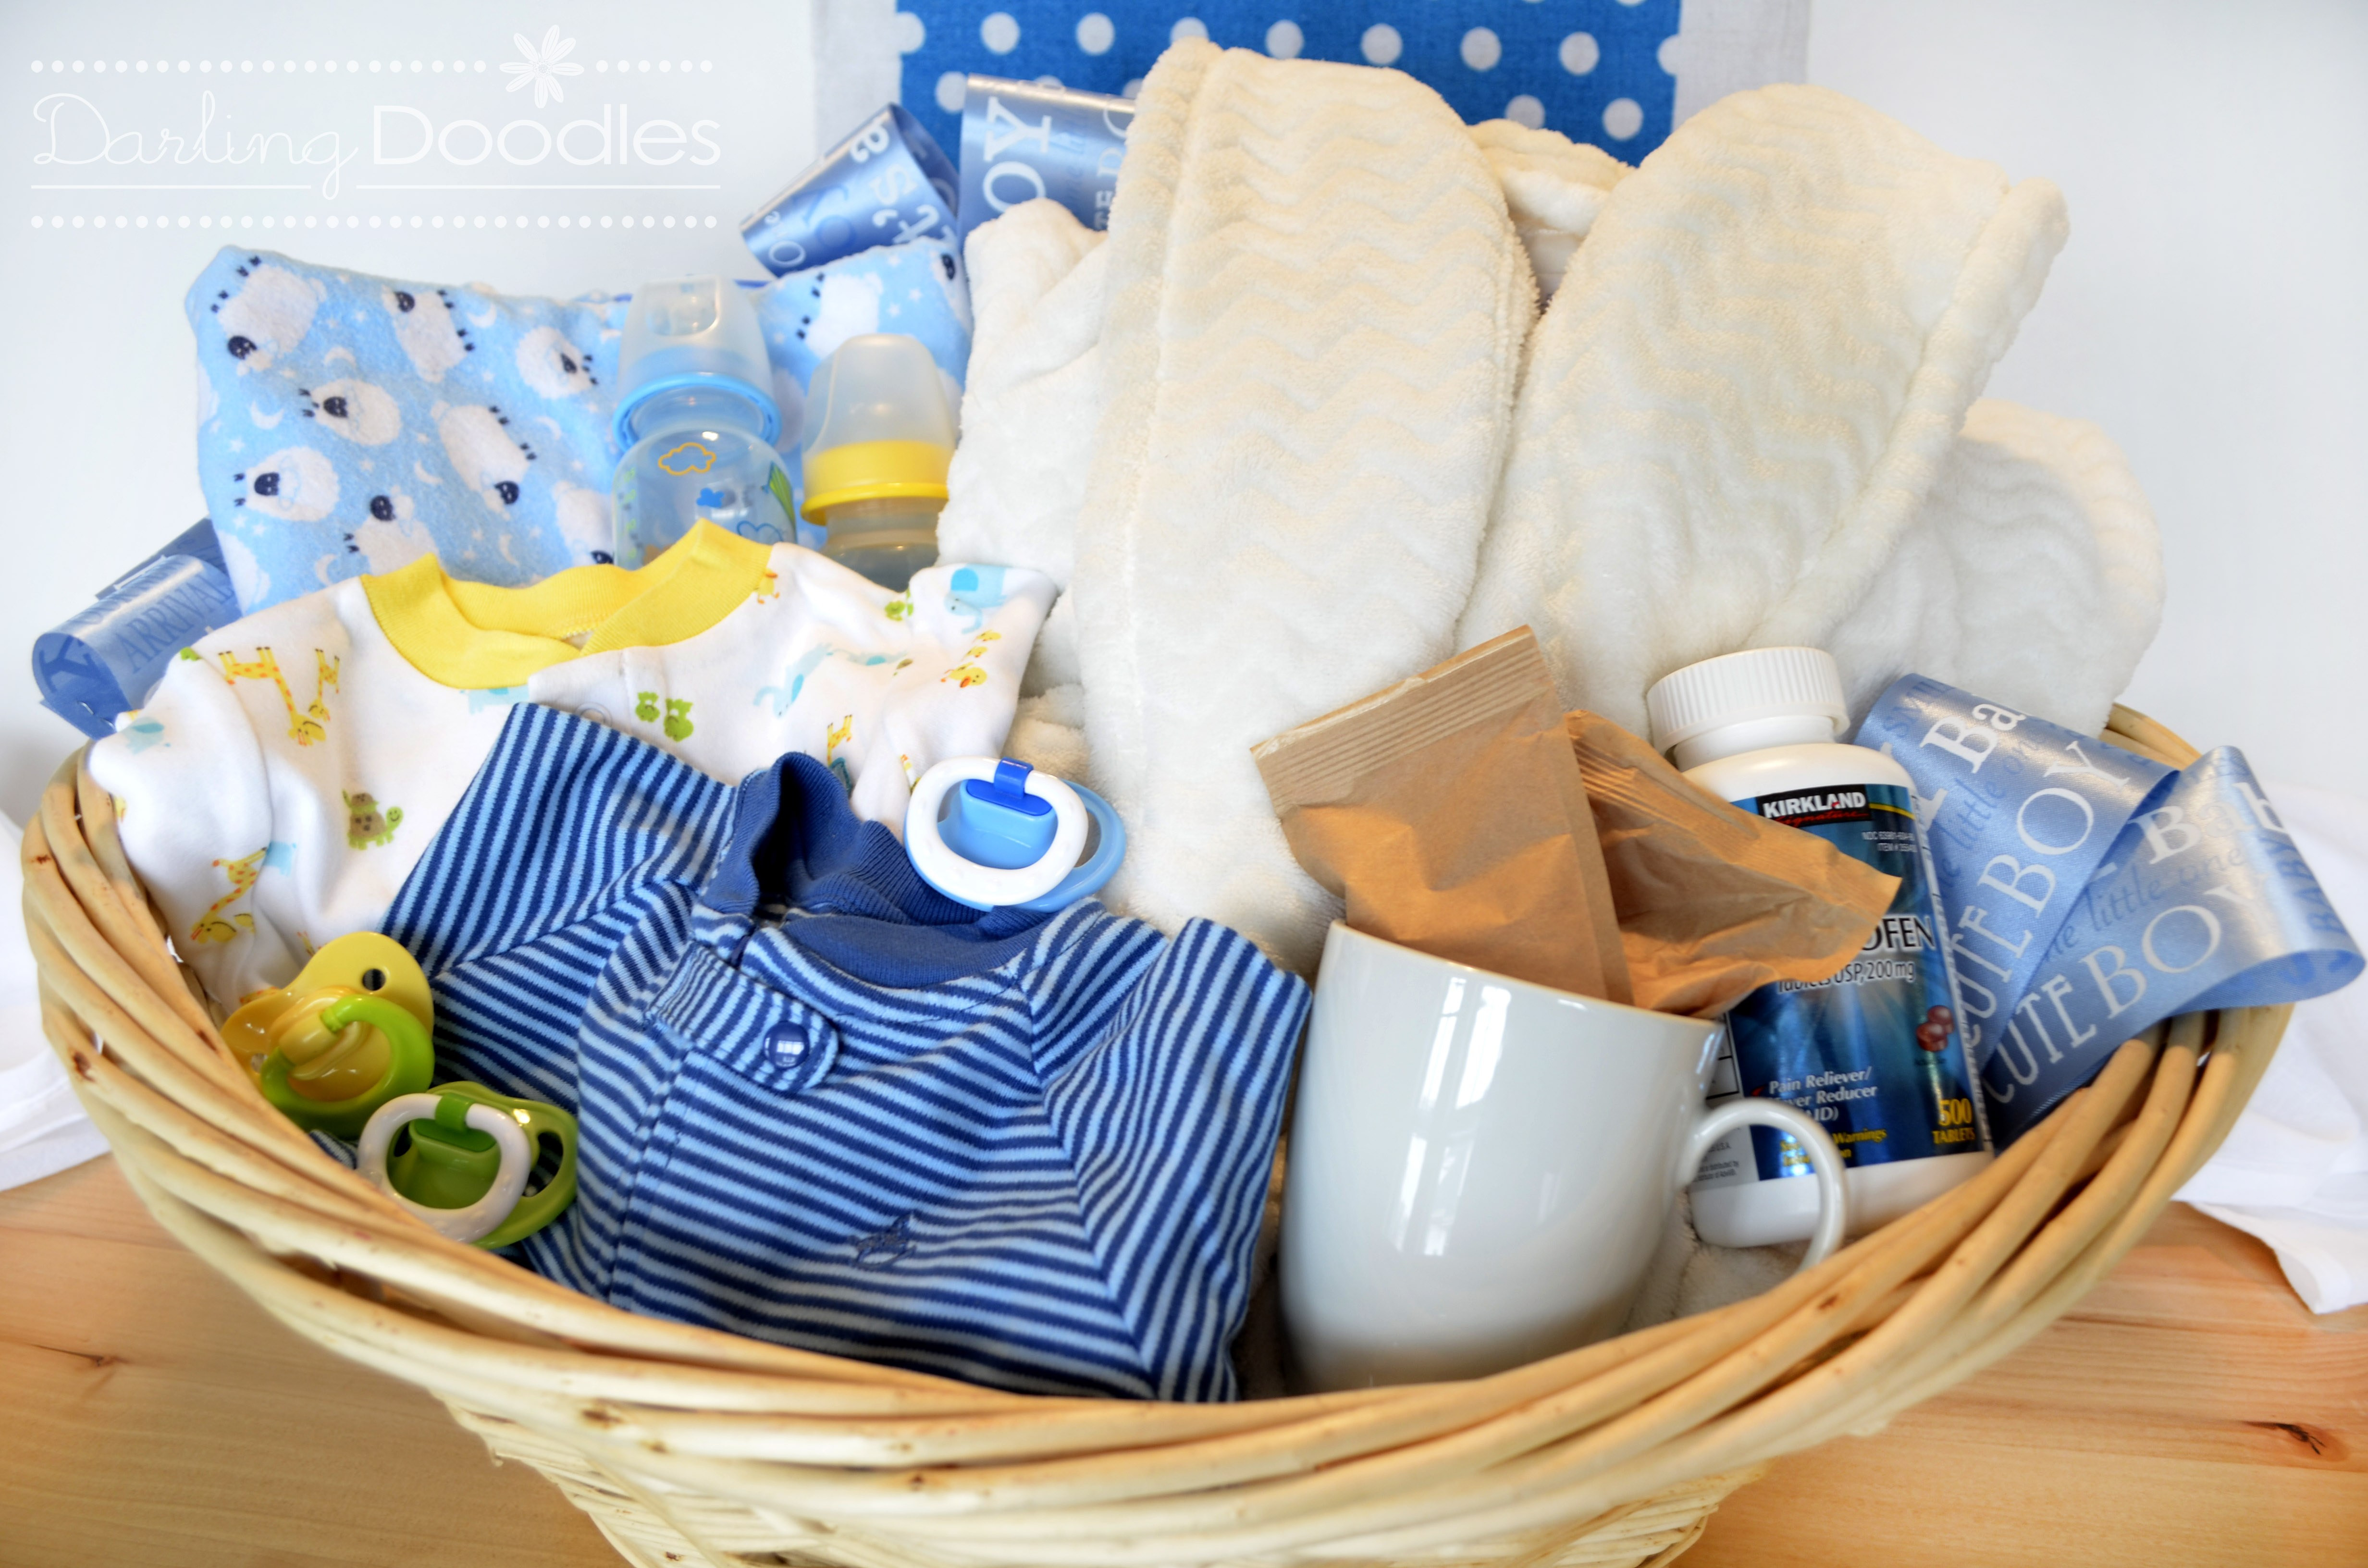 Baby Gift Basket Ideas  Up All Night Survival Kit Darling Doodles